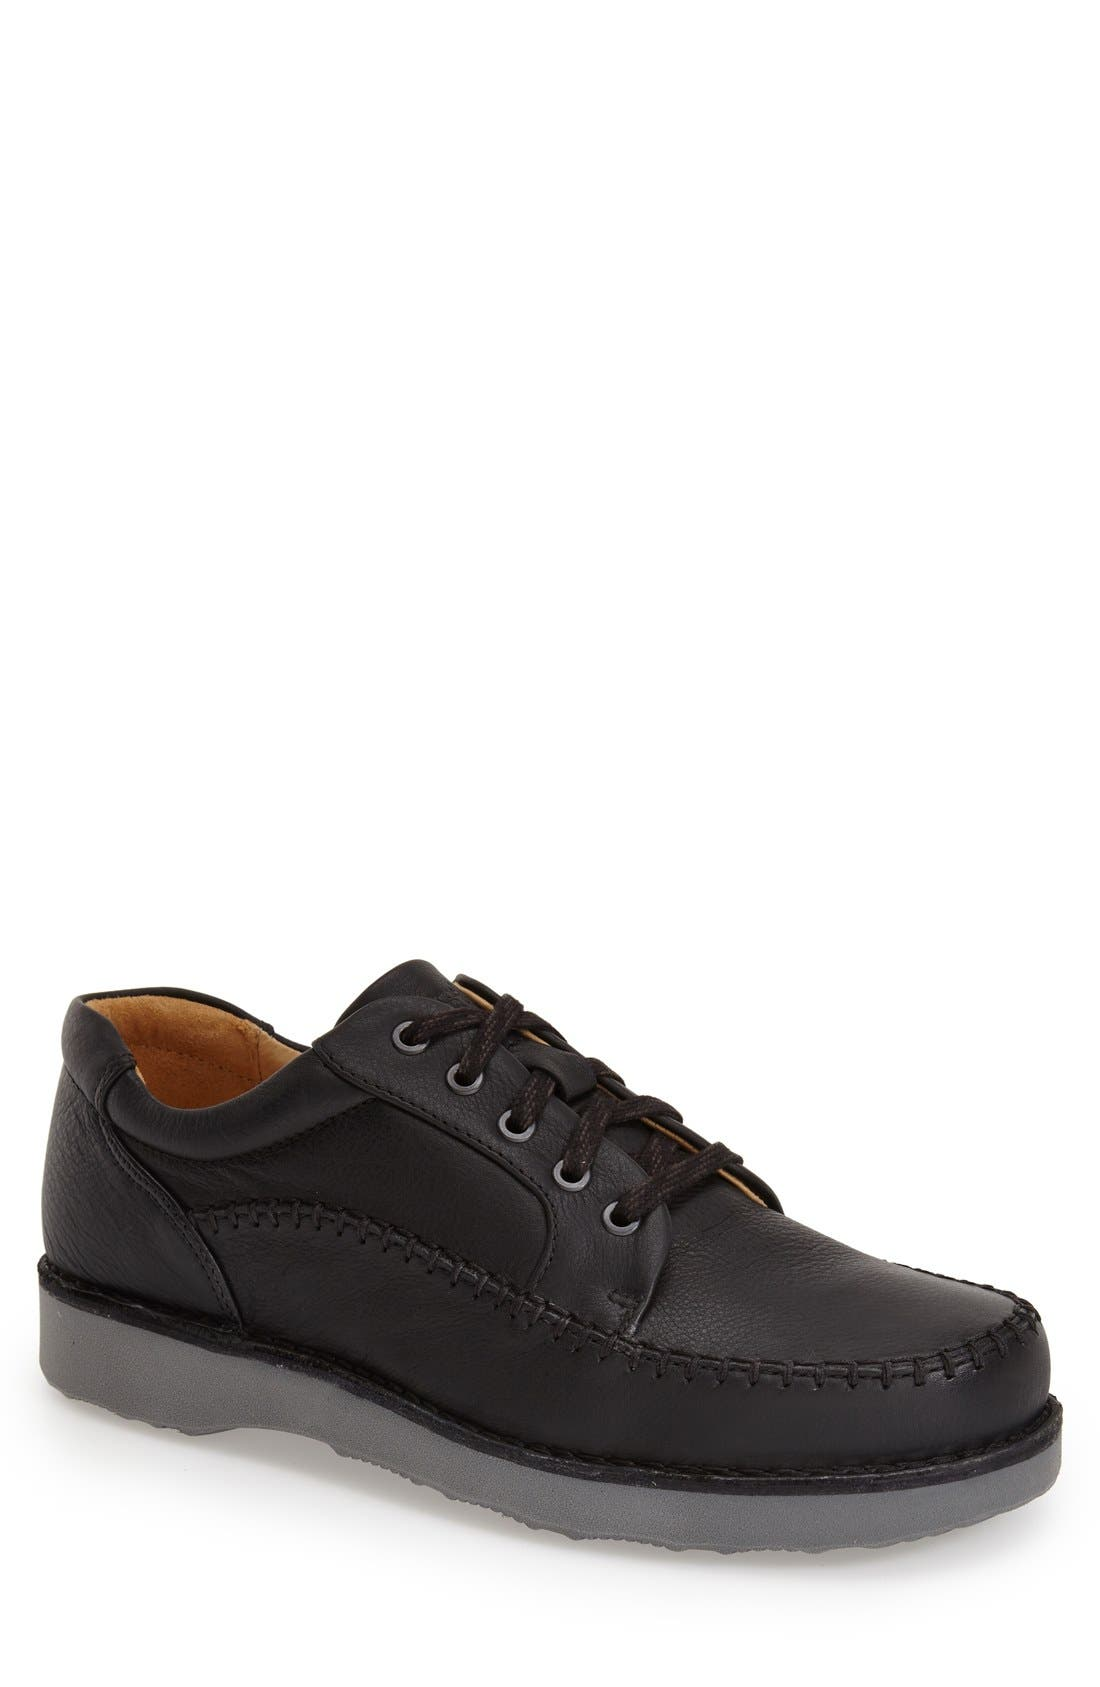 'Get-Up' Moc Toe Derby,                         Main,                         color, Black Leather